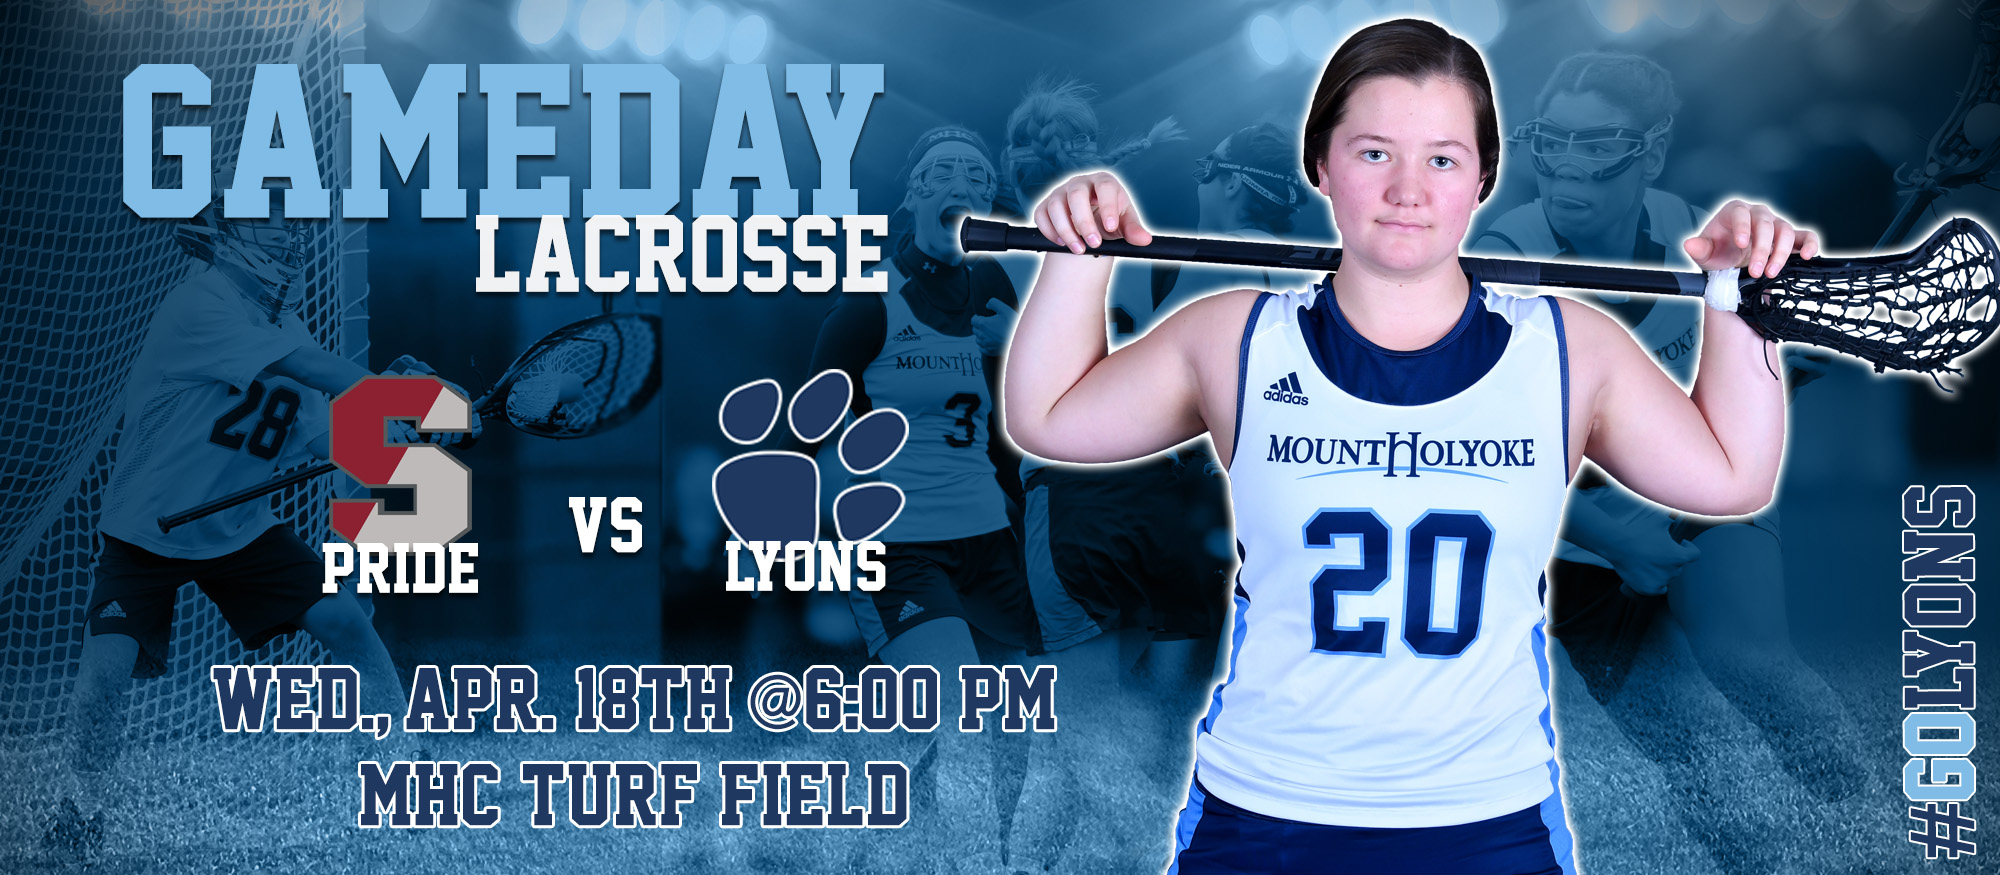 Graphic promoting the Lyons lacrosse team's game against Springfield on April 18, 2018. Featured is first year lacrosse player, Julia Klein.